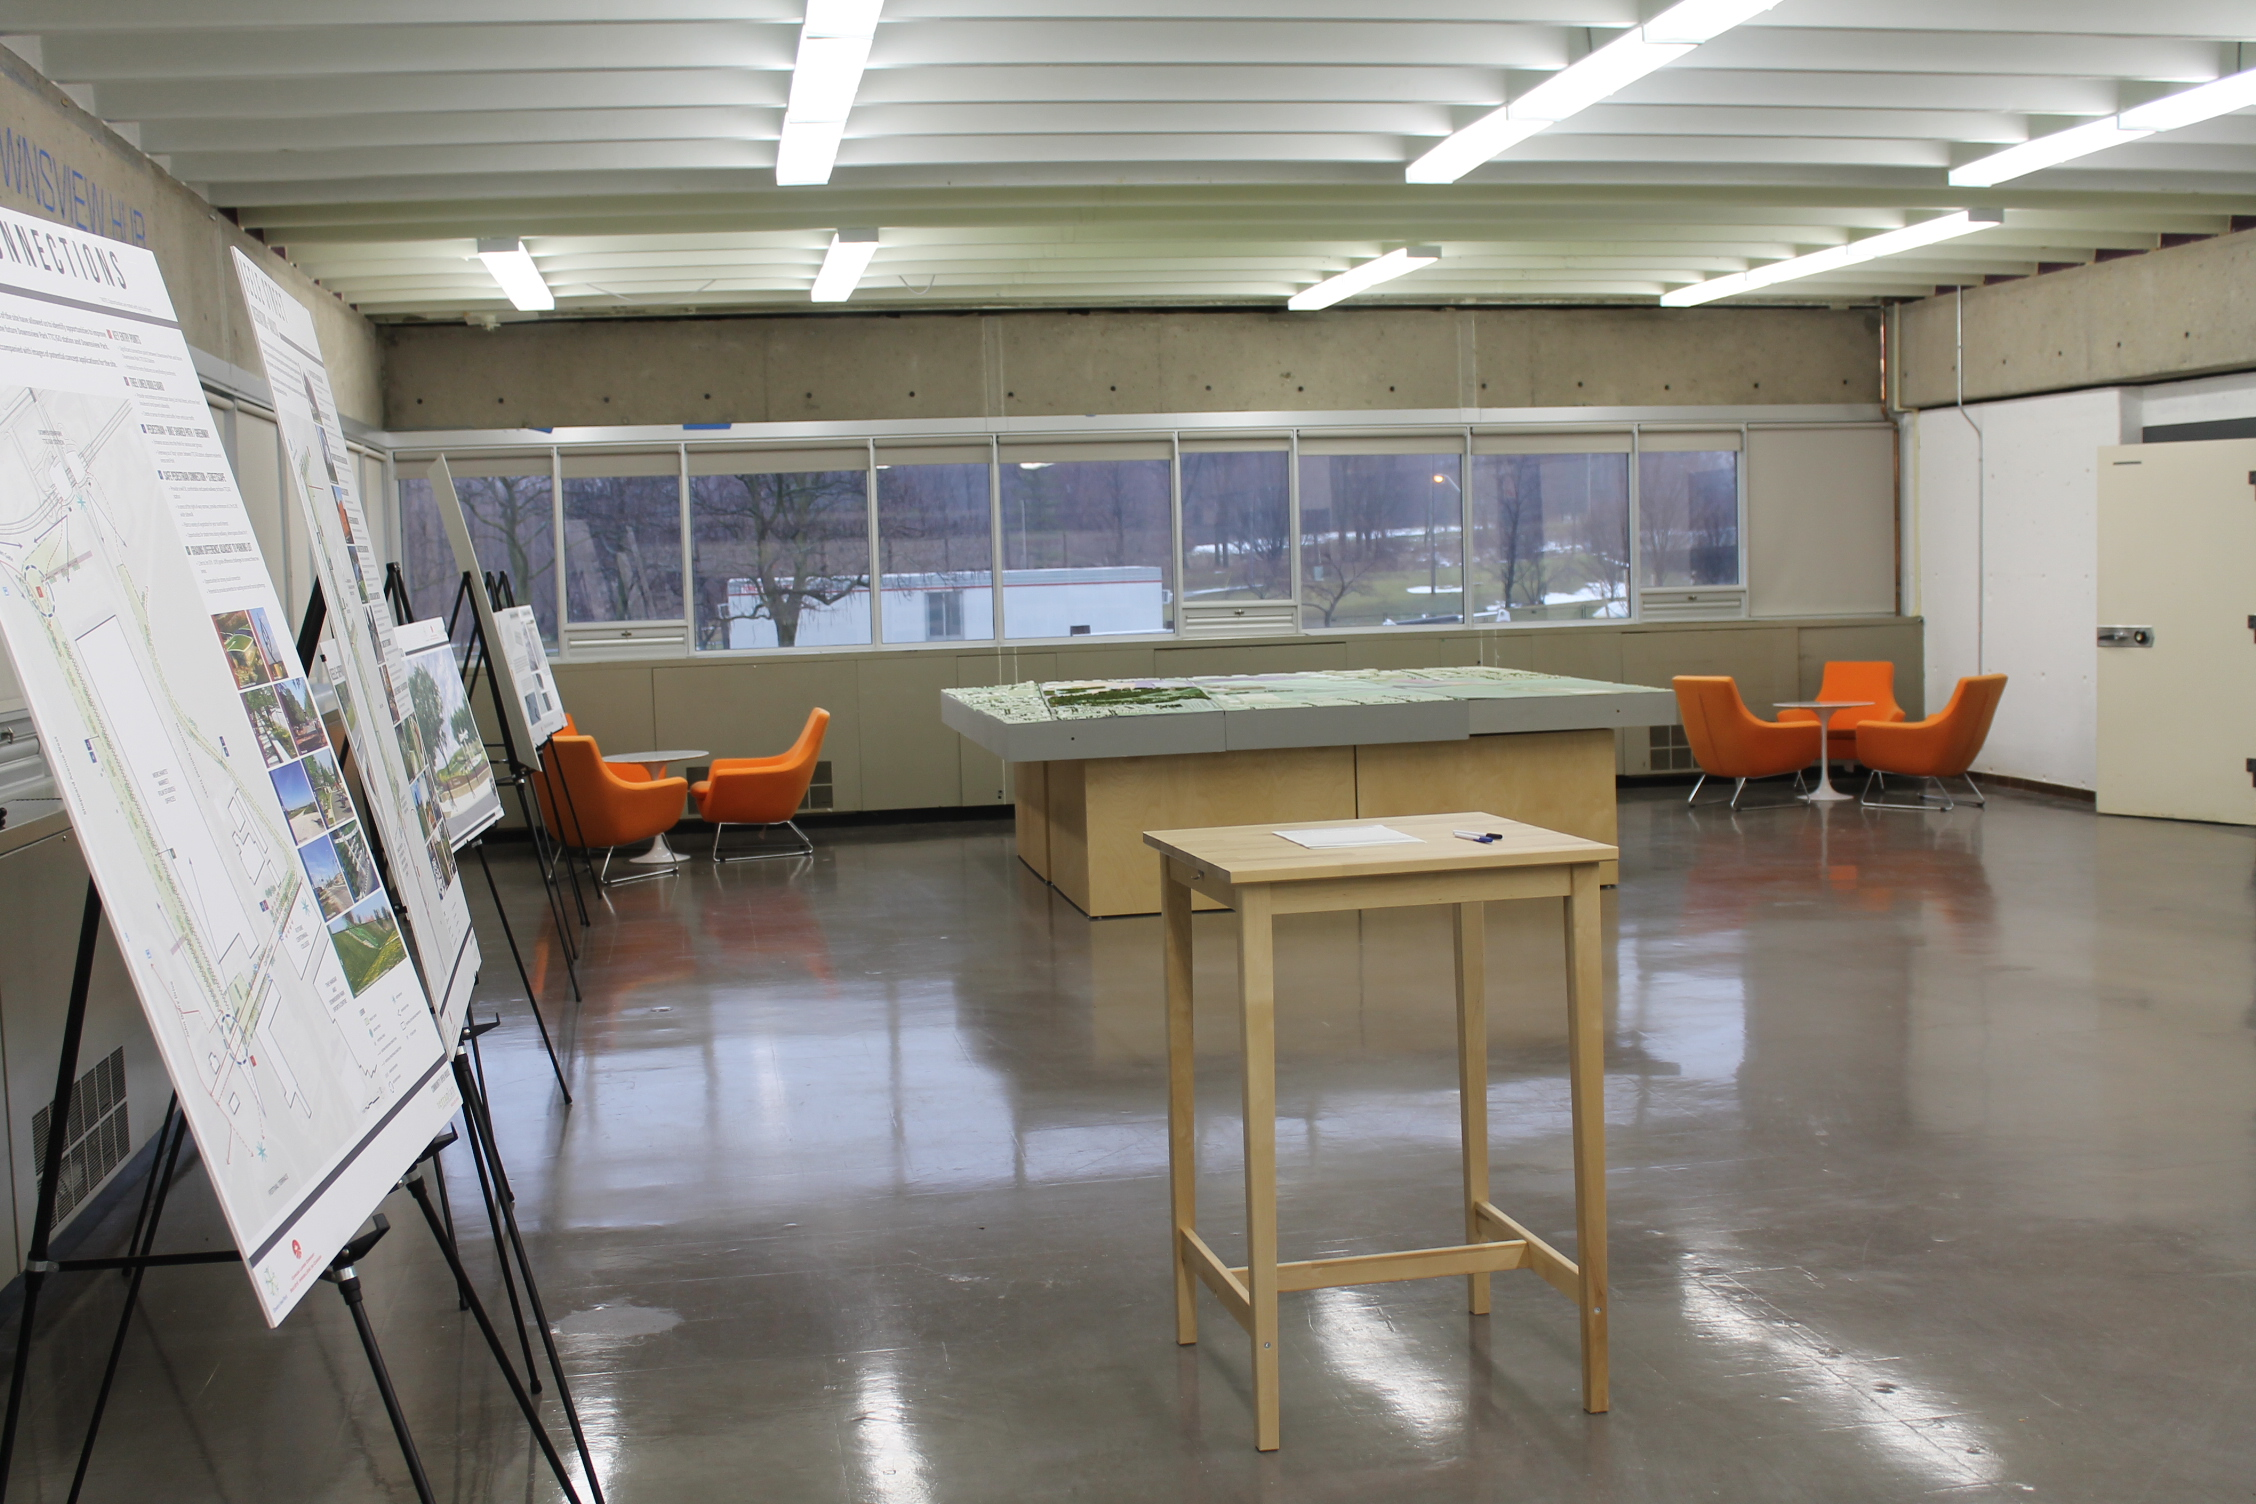 Picture of smooth concrete floors and moveable tables